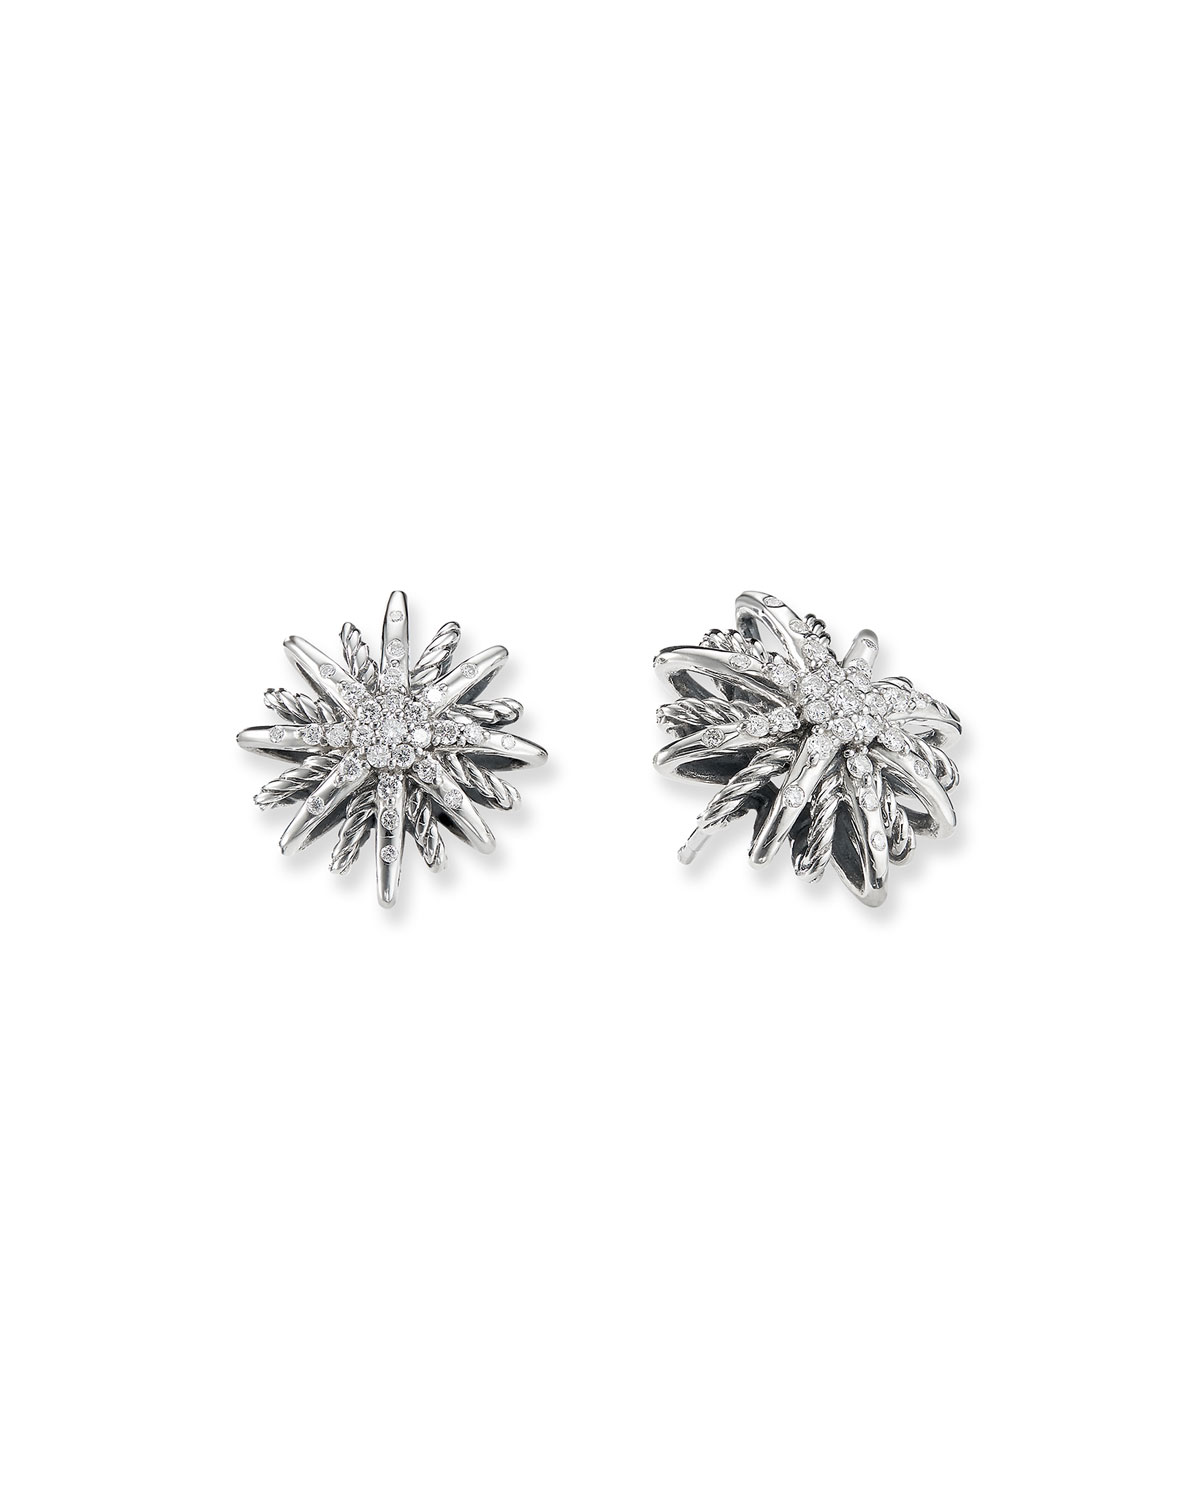 Starburst Earrings, Diamonds